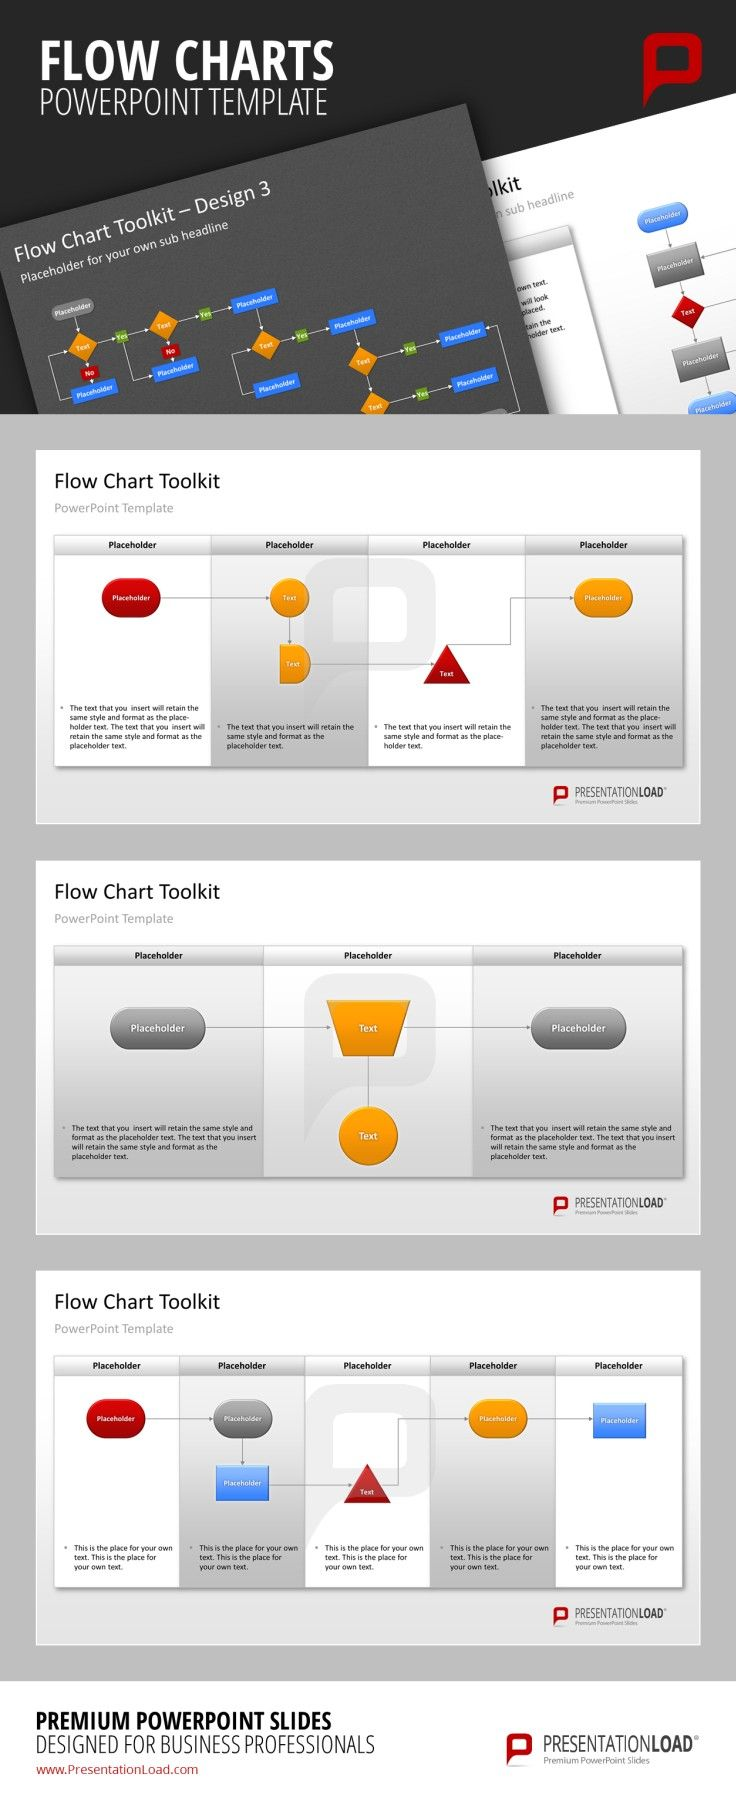 Flow Charts PowerPoint Templates This comprehensive collection of standardized symbols enables you to create DIN or ISO conform flow charts and IDEFO and SDL diagrams. #presentationload www.presentationl...